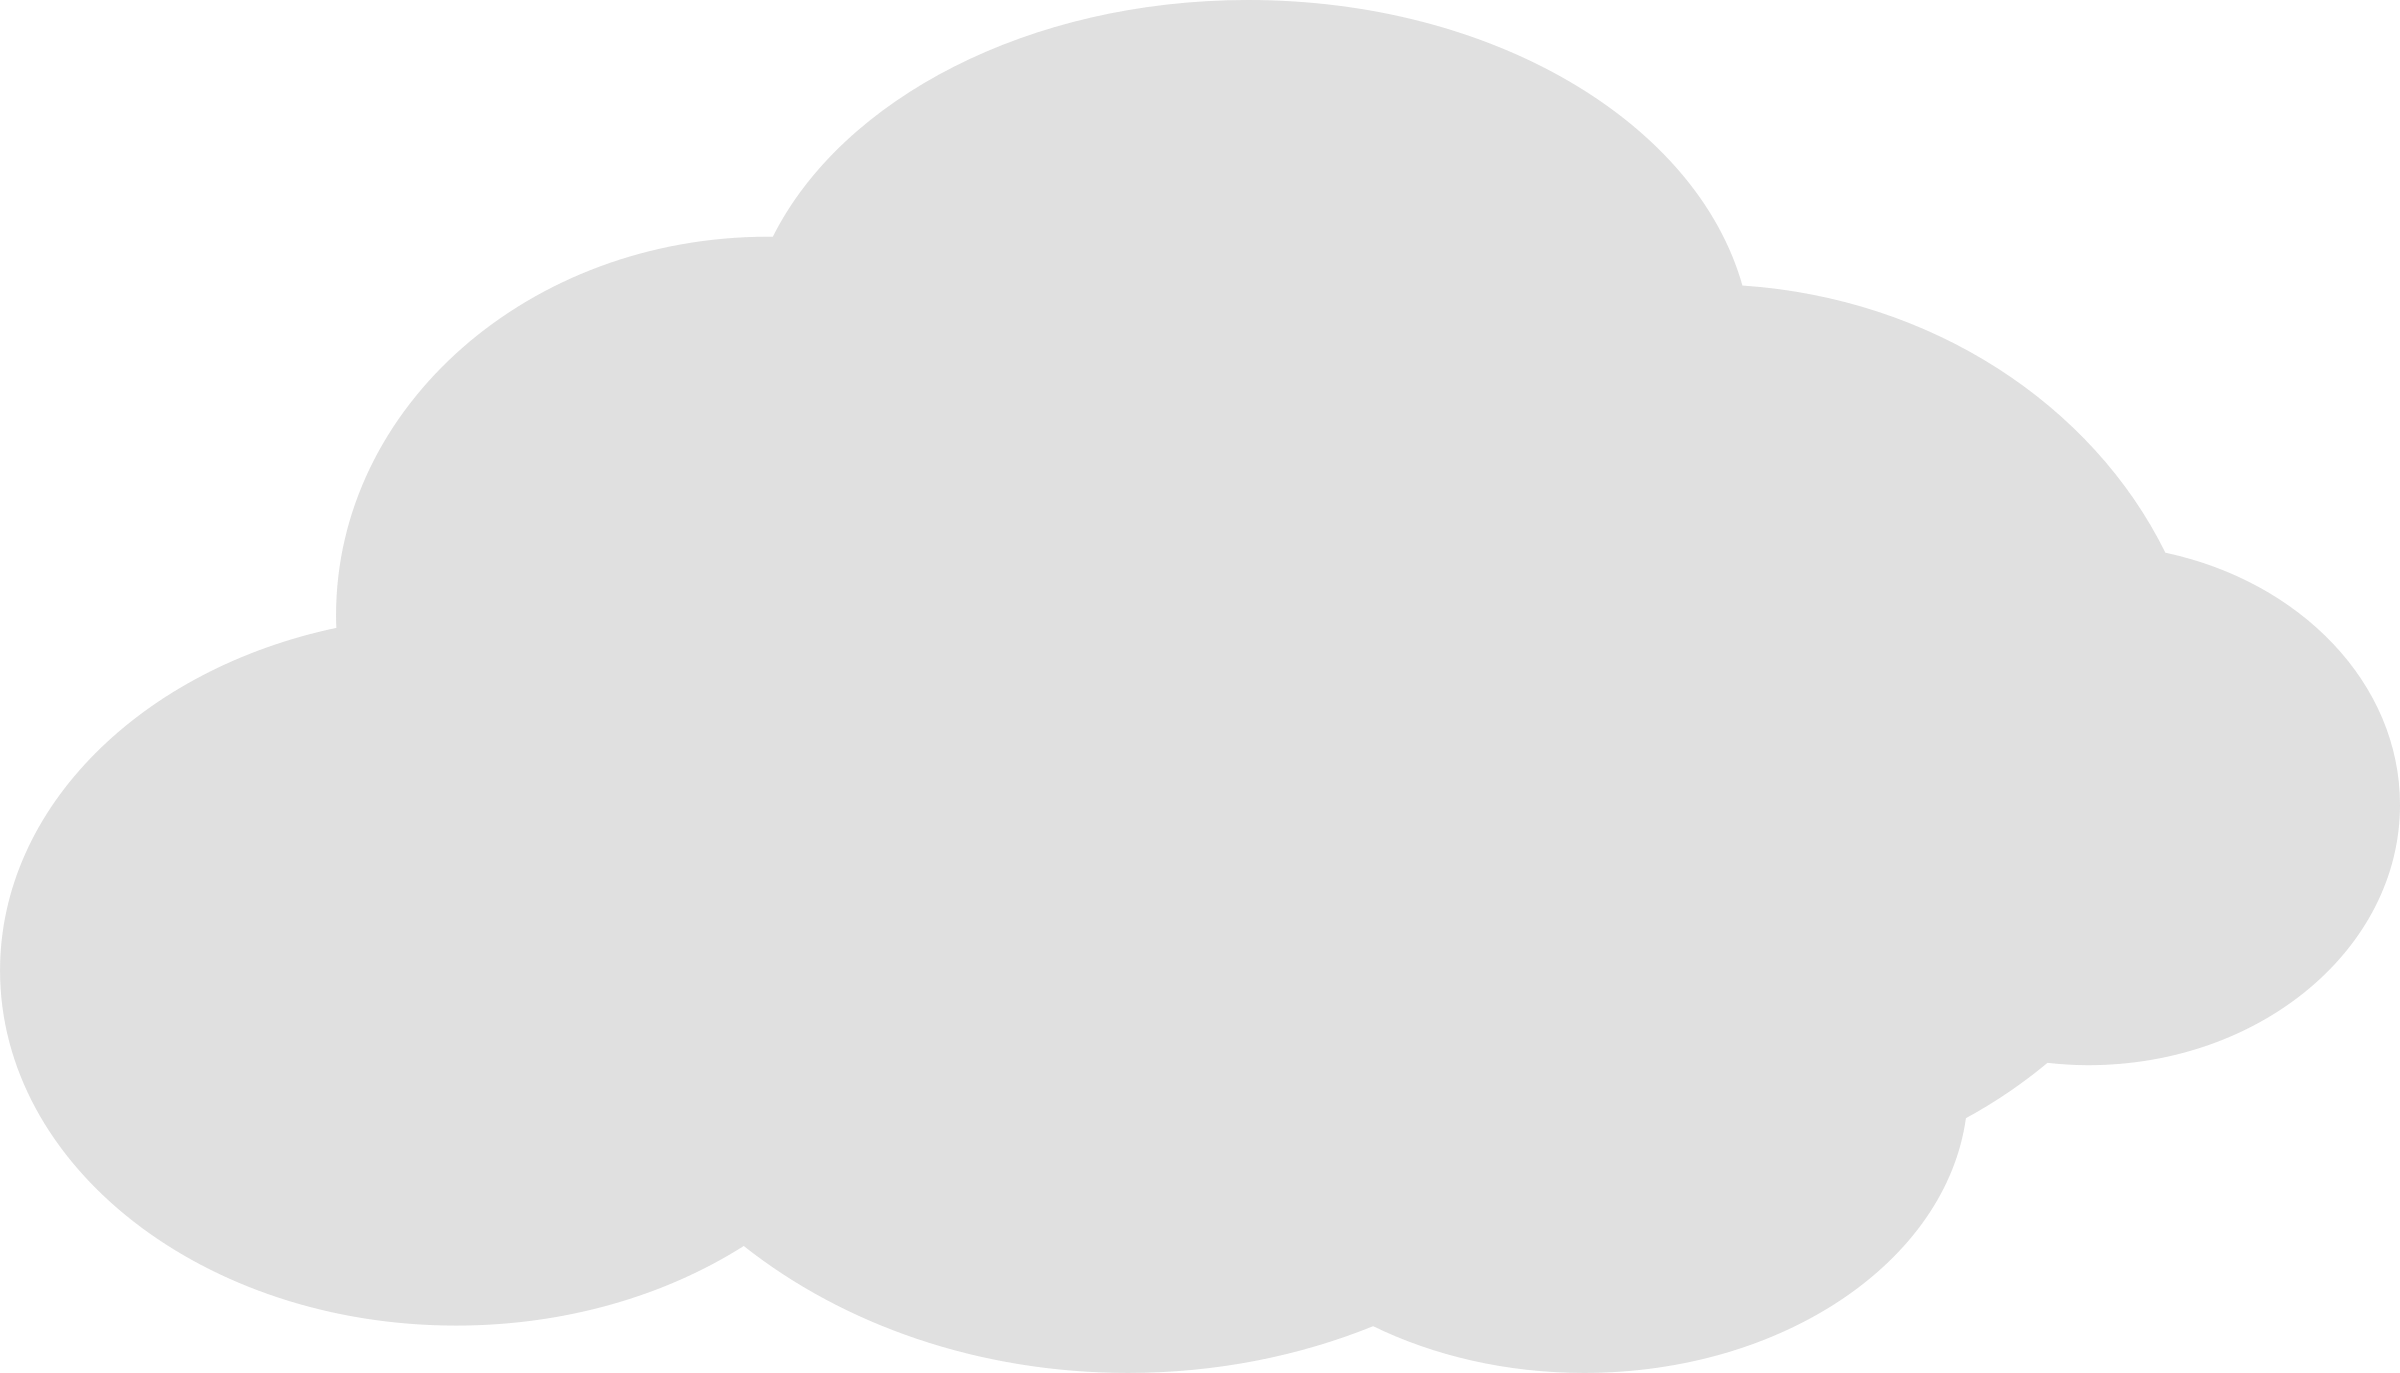 Clouds clipart simple Icon Simple icon Clipart Simple